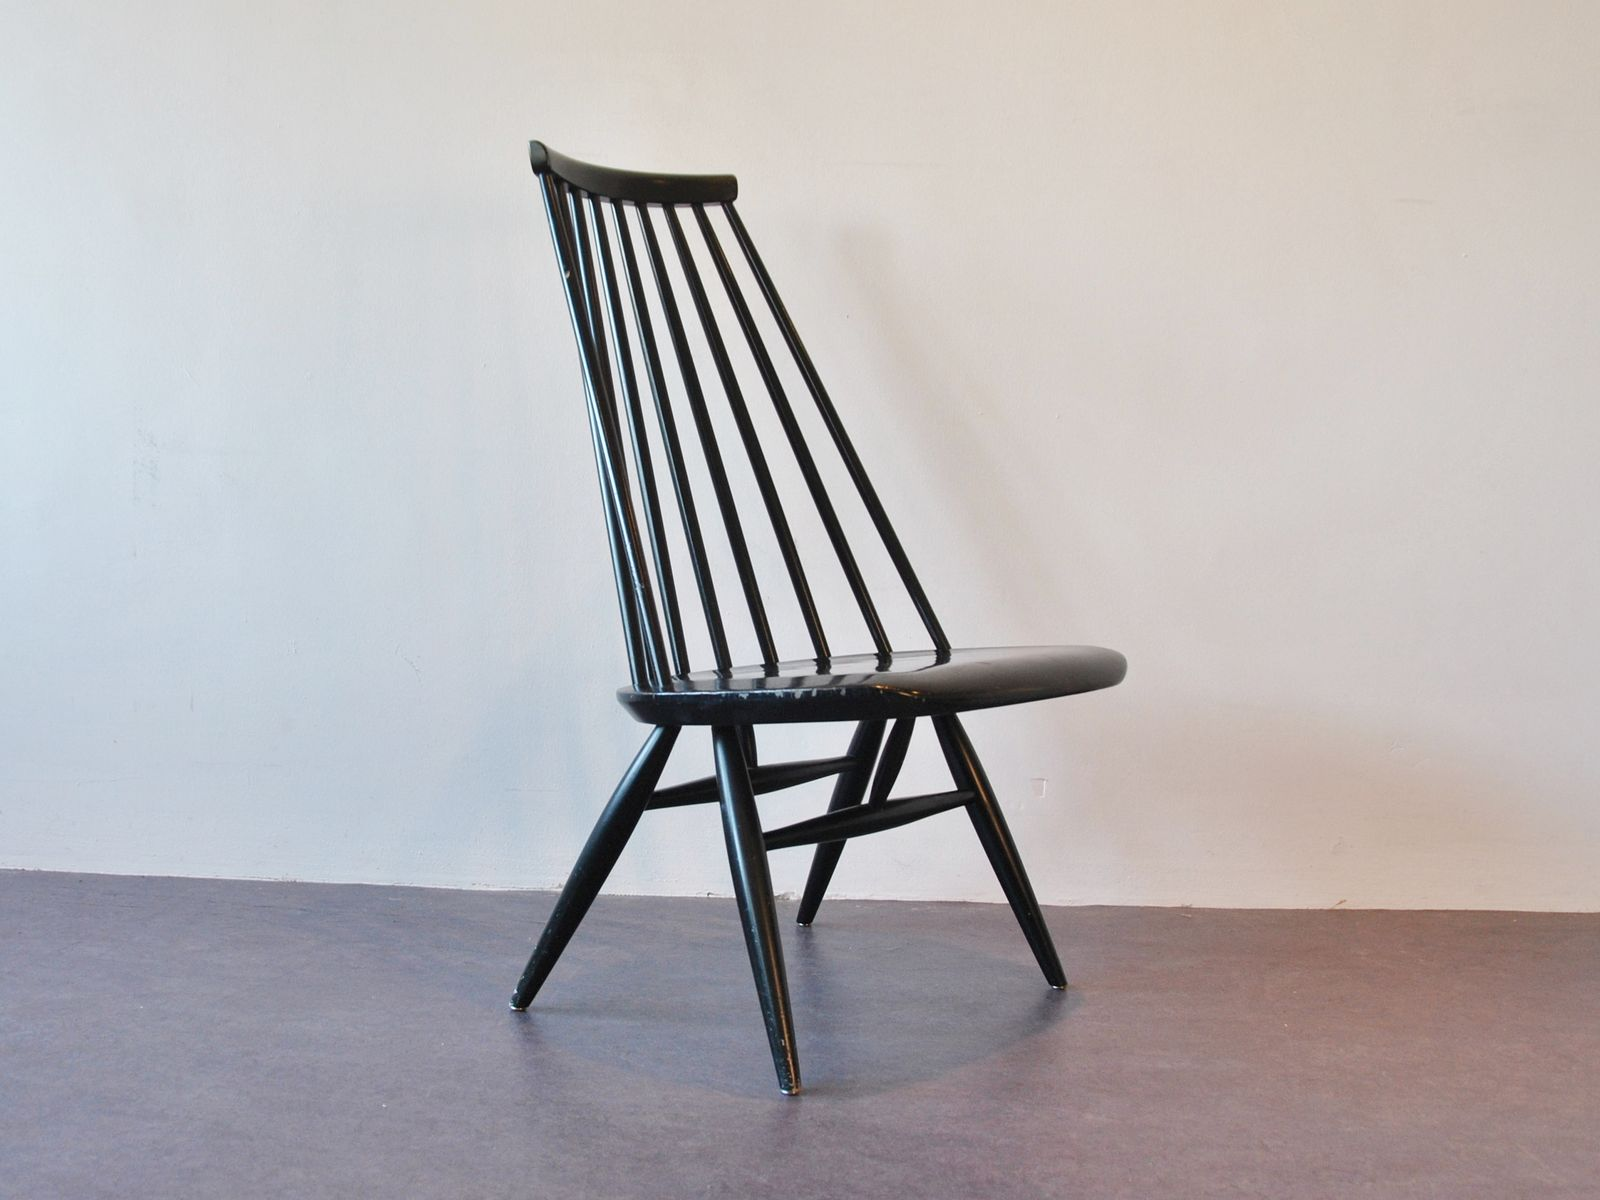 mademoiselle lounge chair by ilmari tapiovaara for edsby verken 1958 for sale at pamono. Black Bedroom Furniture Sets. Home Design Ideas